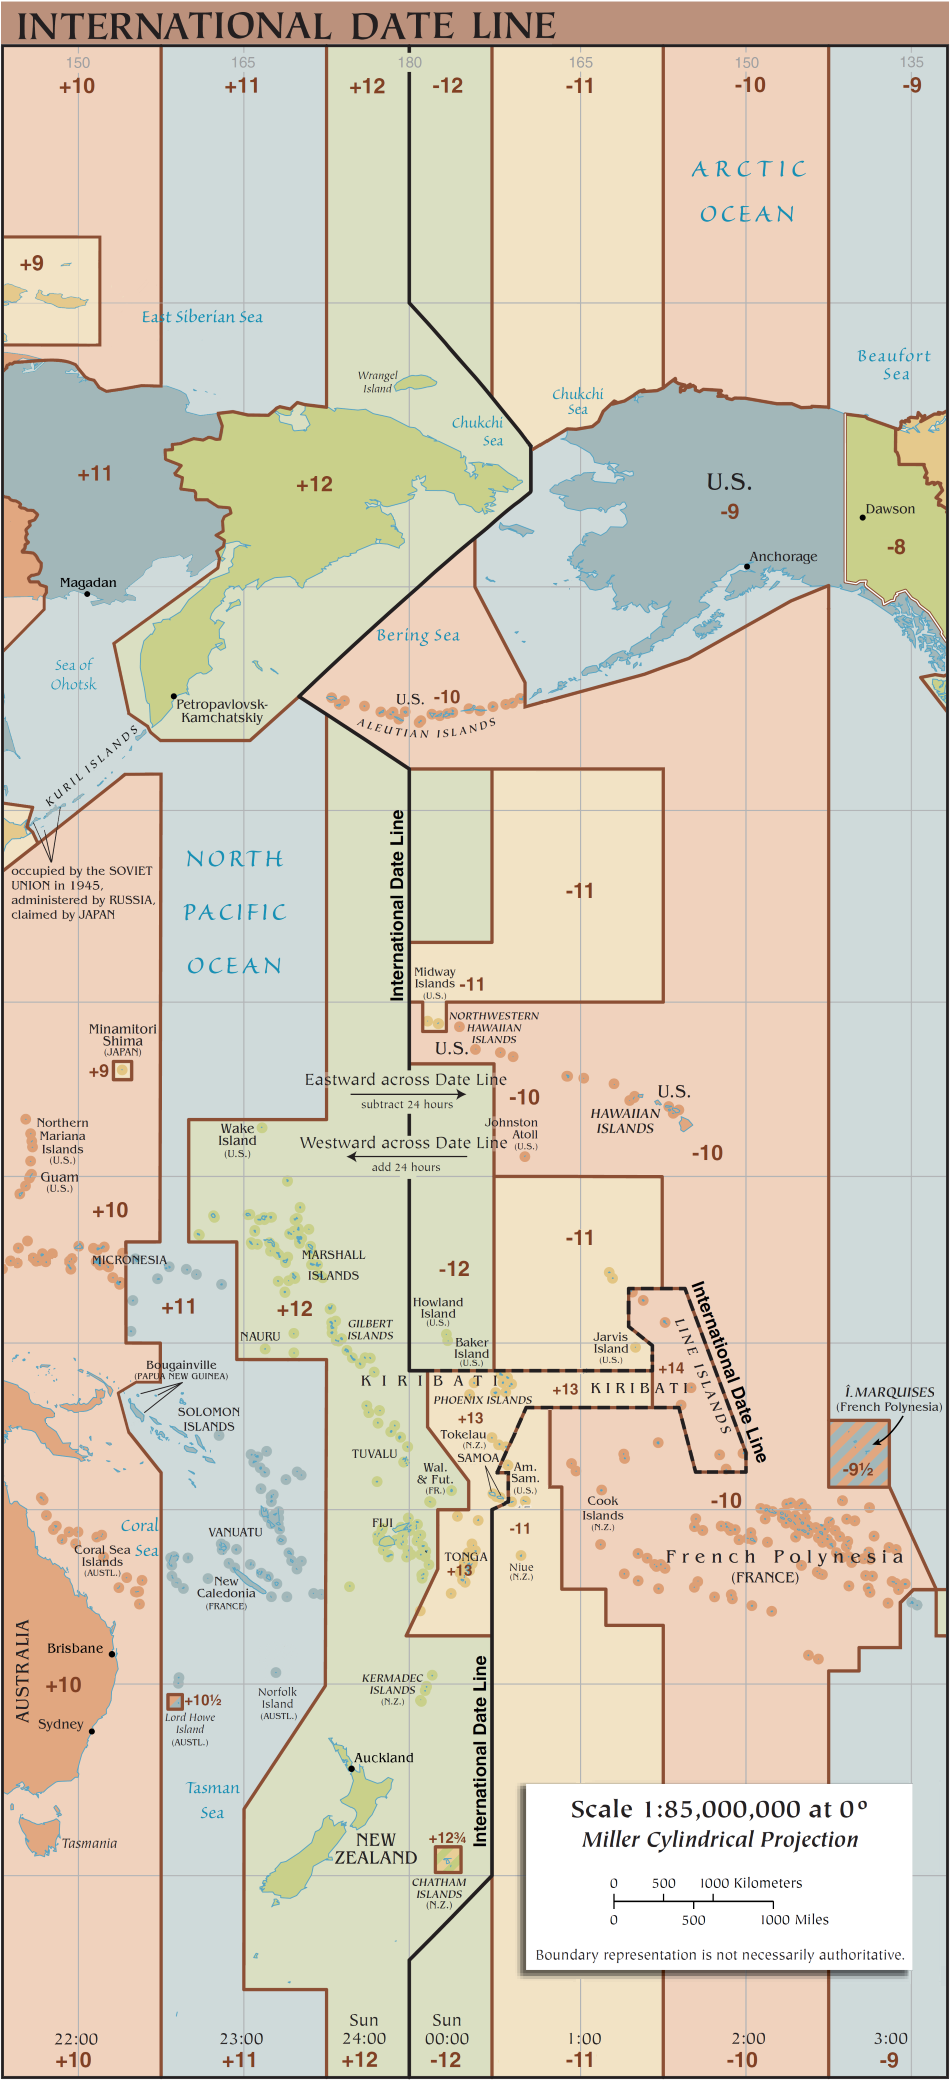 http://upload.wikimedia.org/wikipedia/commons/6/61/International_Date_Line.png